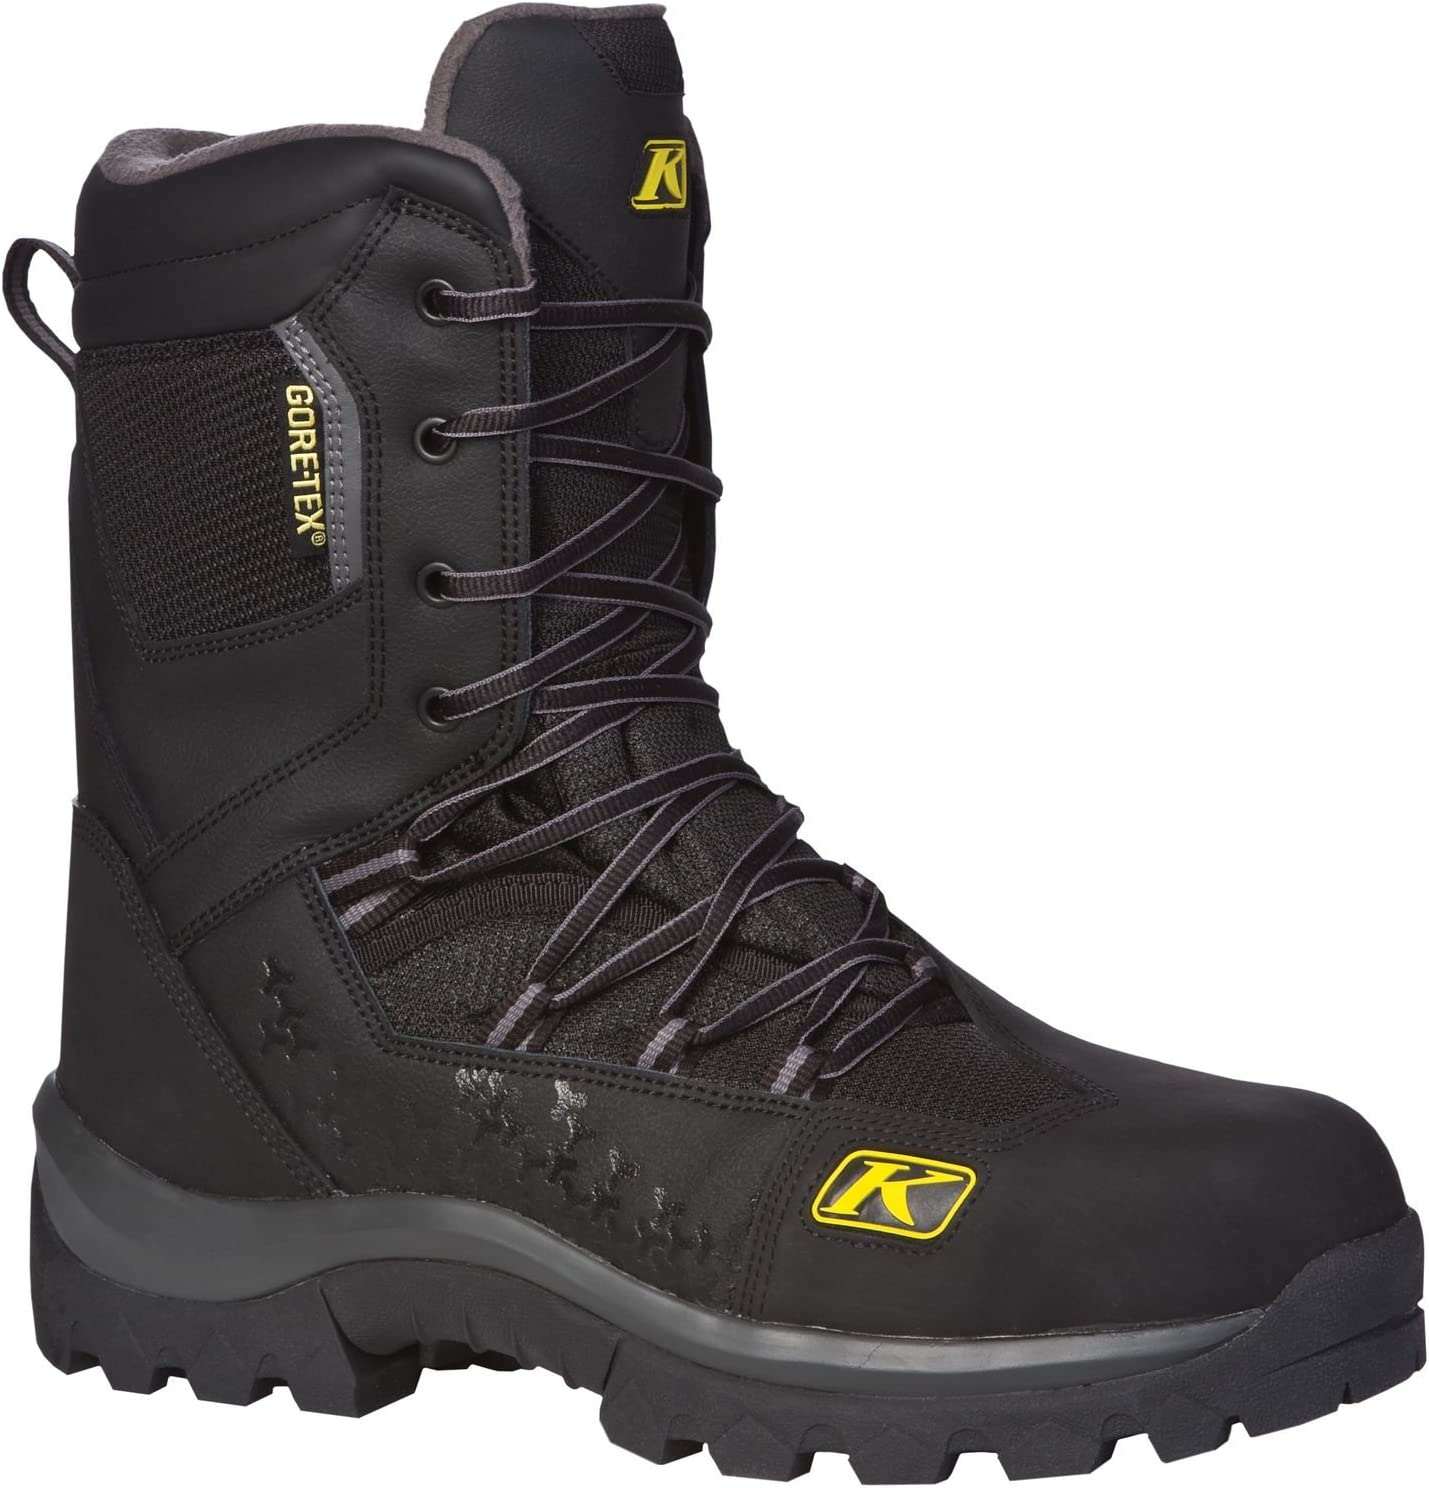 Klim Adrenaline GTX Boot Size 5 Black